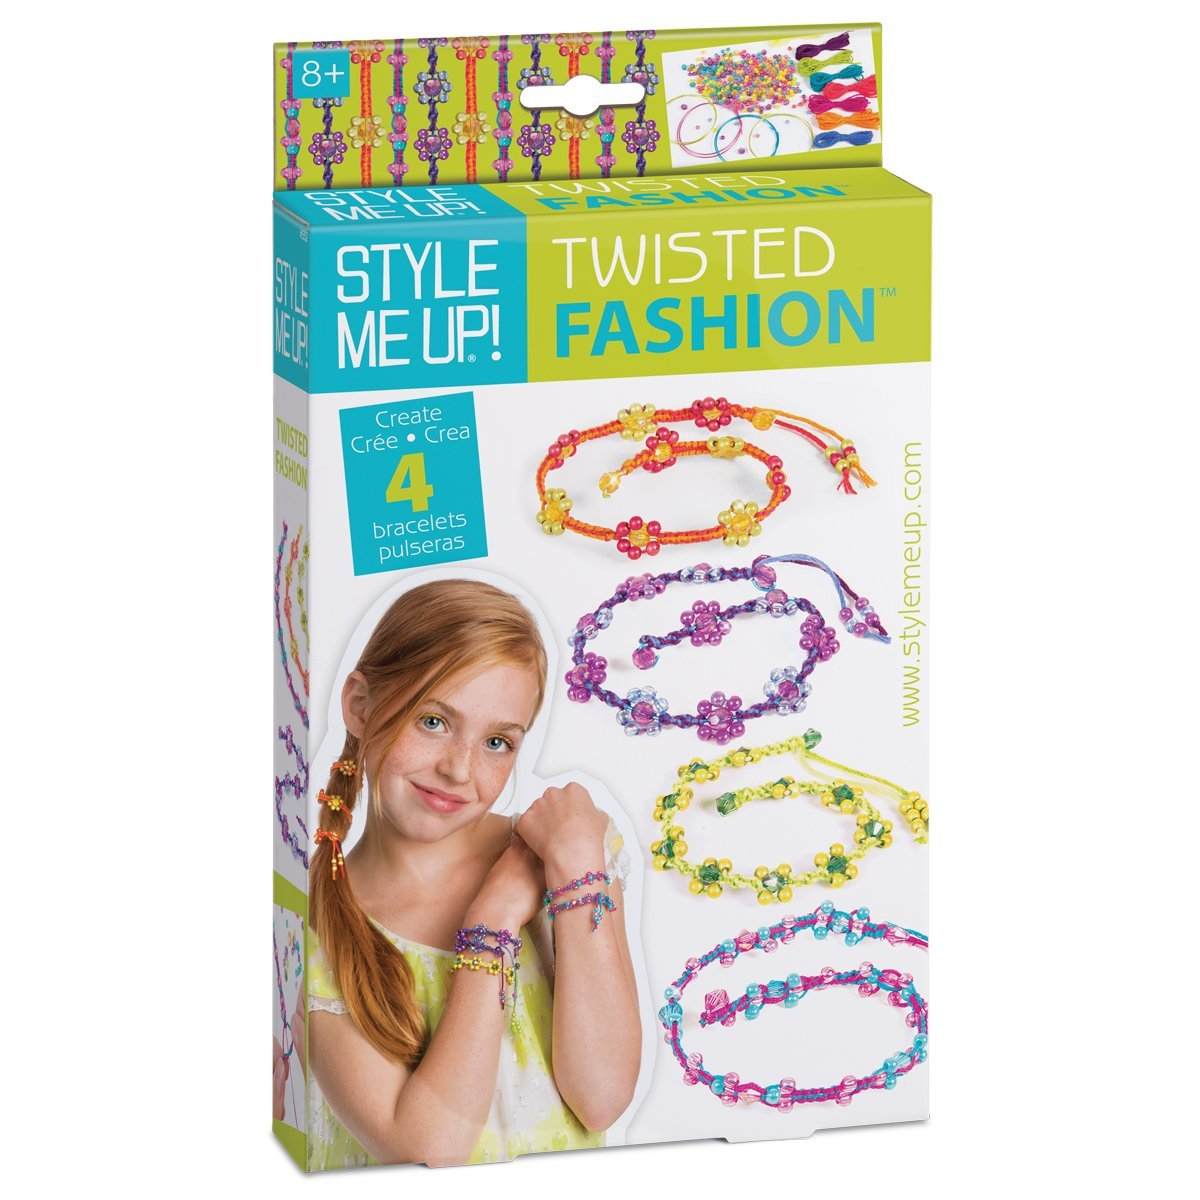 Style me up 00552 - Twistable Friendship Bracelets Wooky Entertainment S552 Toys - General